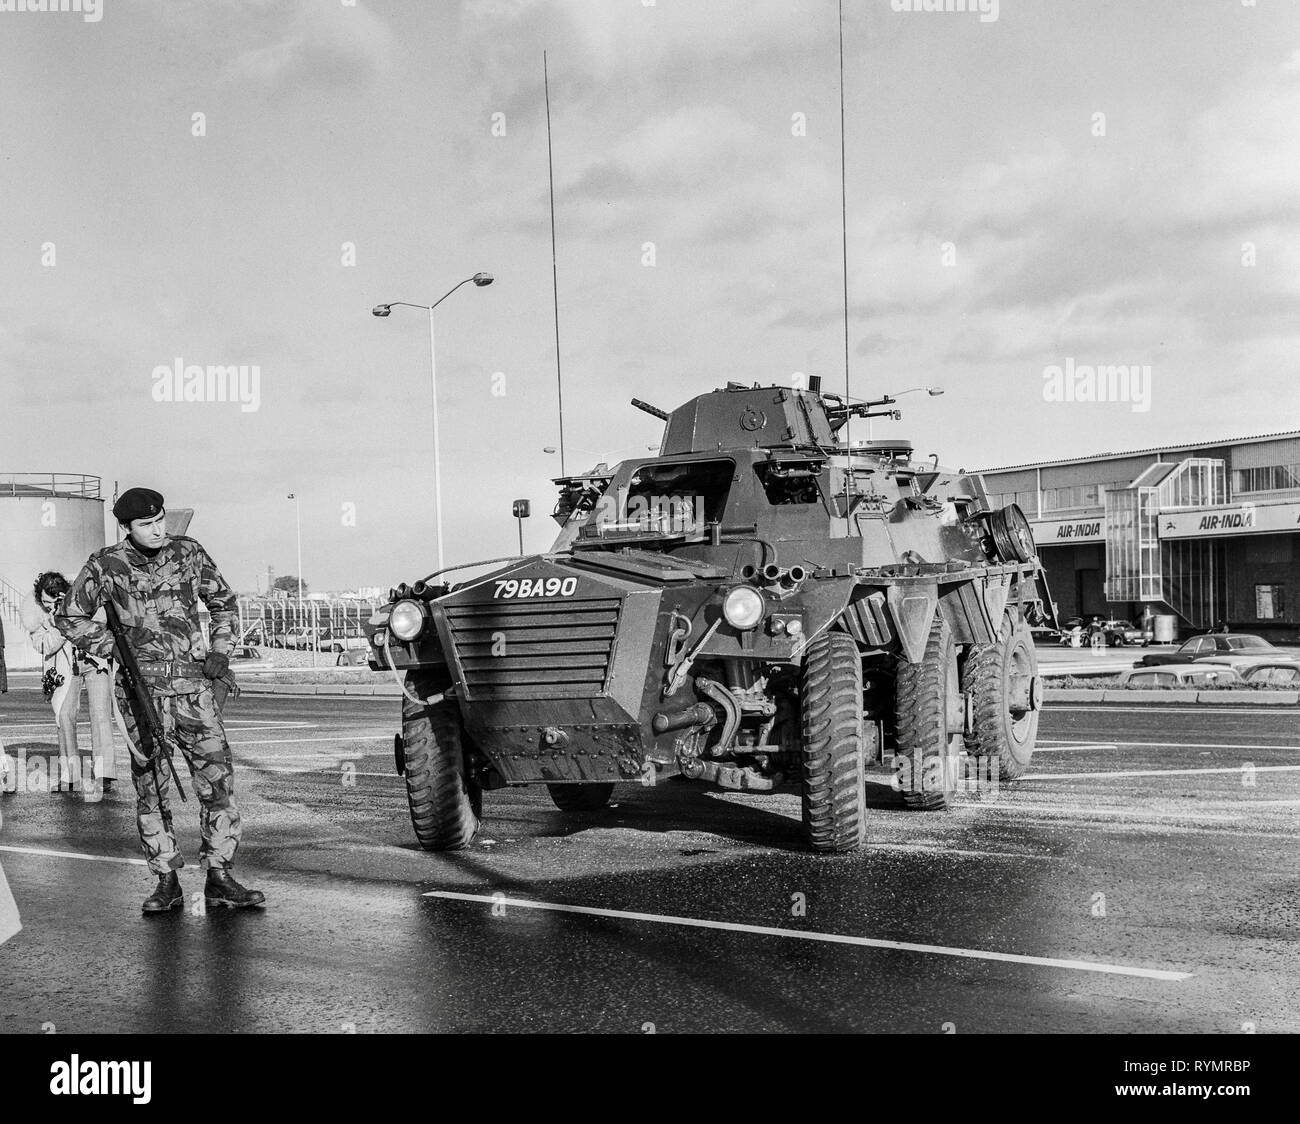 Armed troops move into guard London's Heathrow Airport  in 1974 during a rise in activity by the Irish Republican army on mainland Britain. - Stock Image